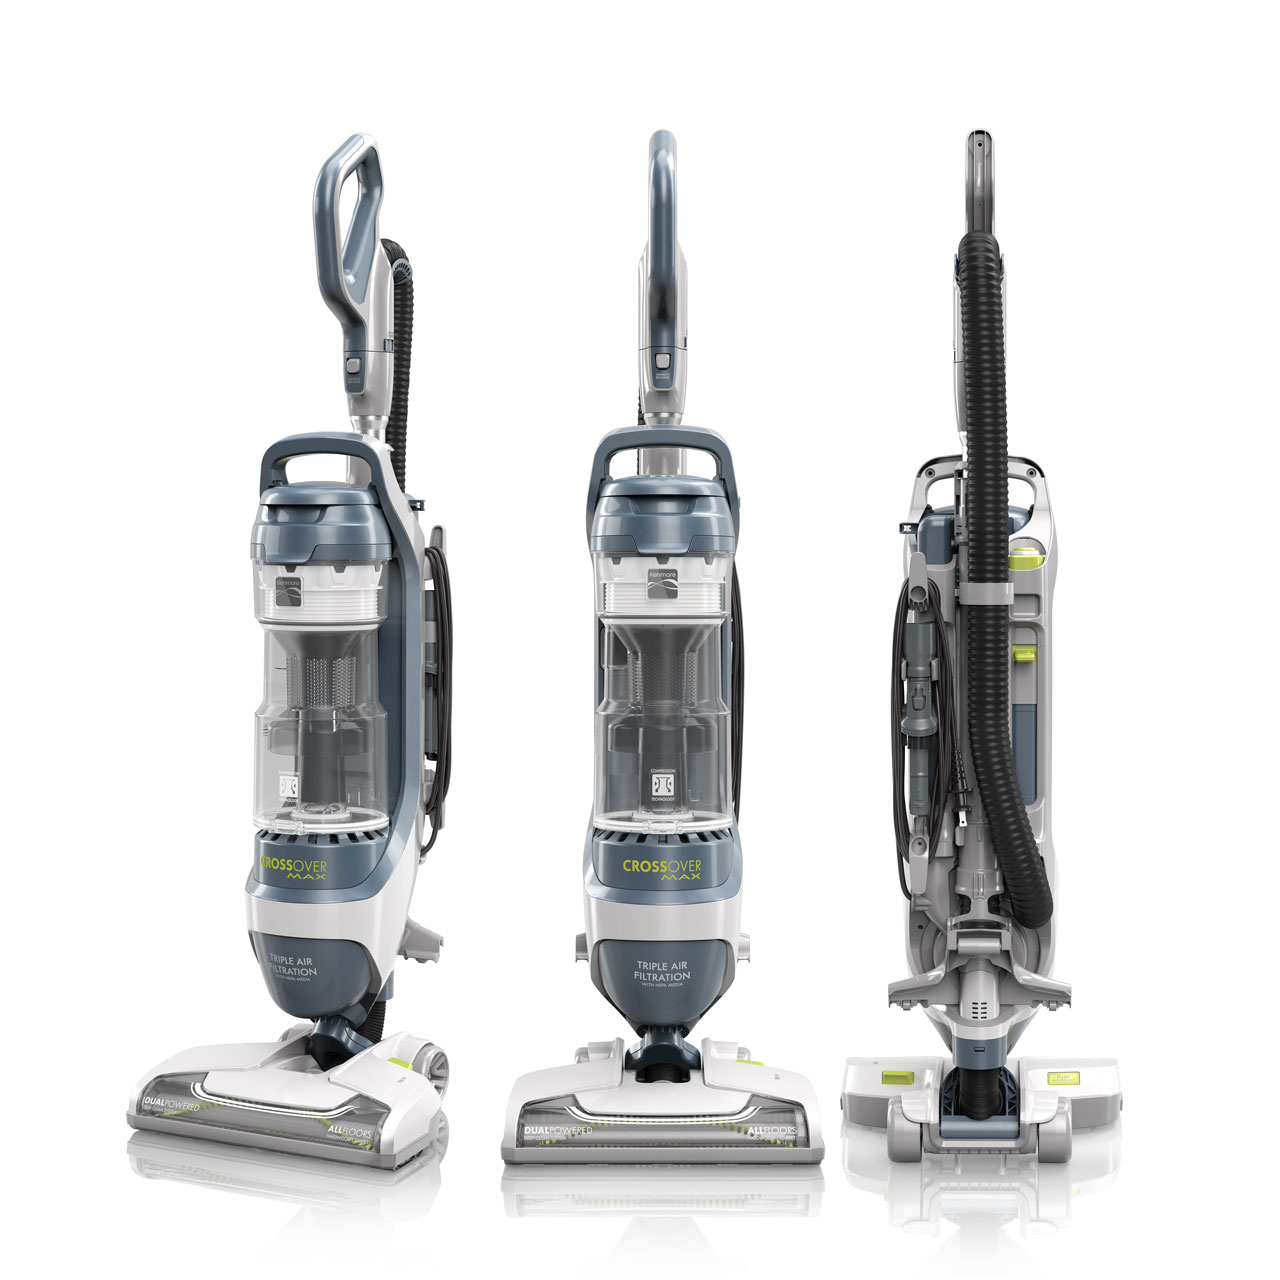 Three standing Kenmore Crossover Max vacuums against white background